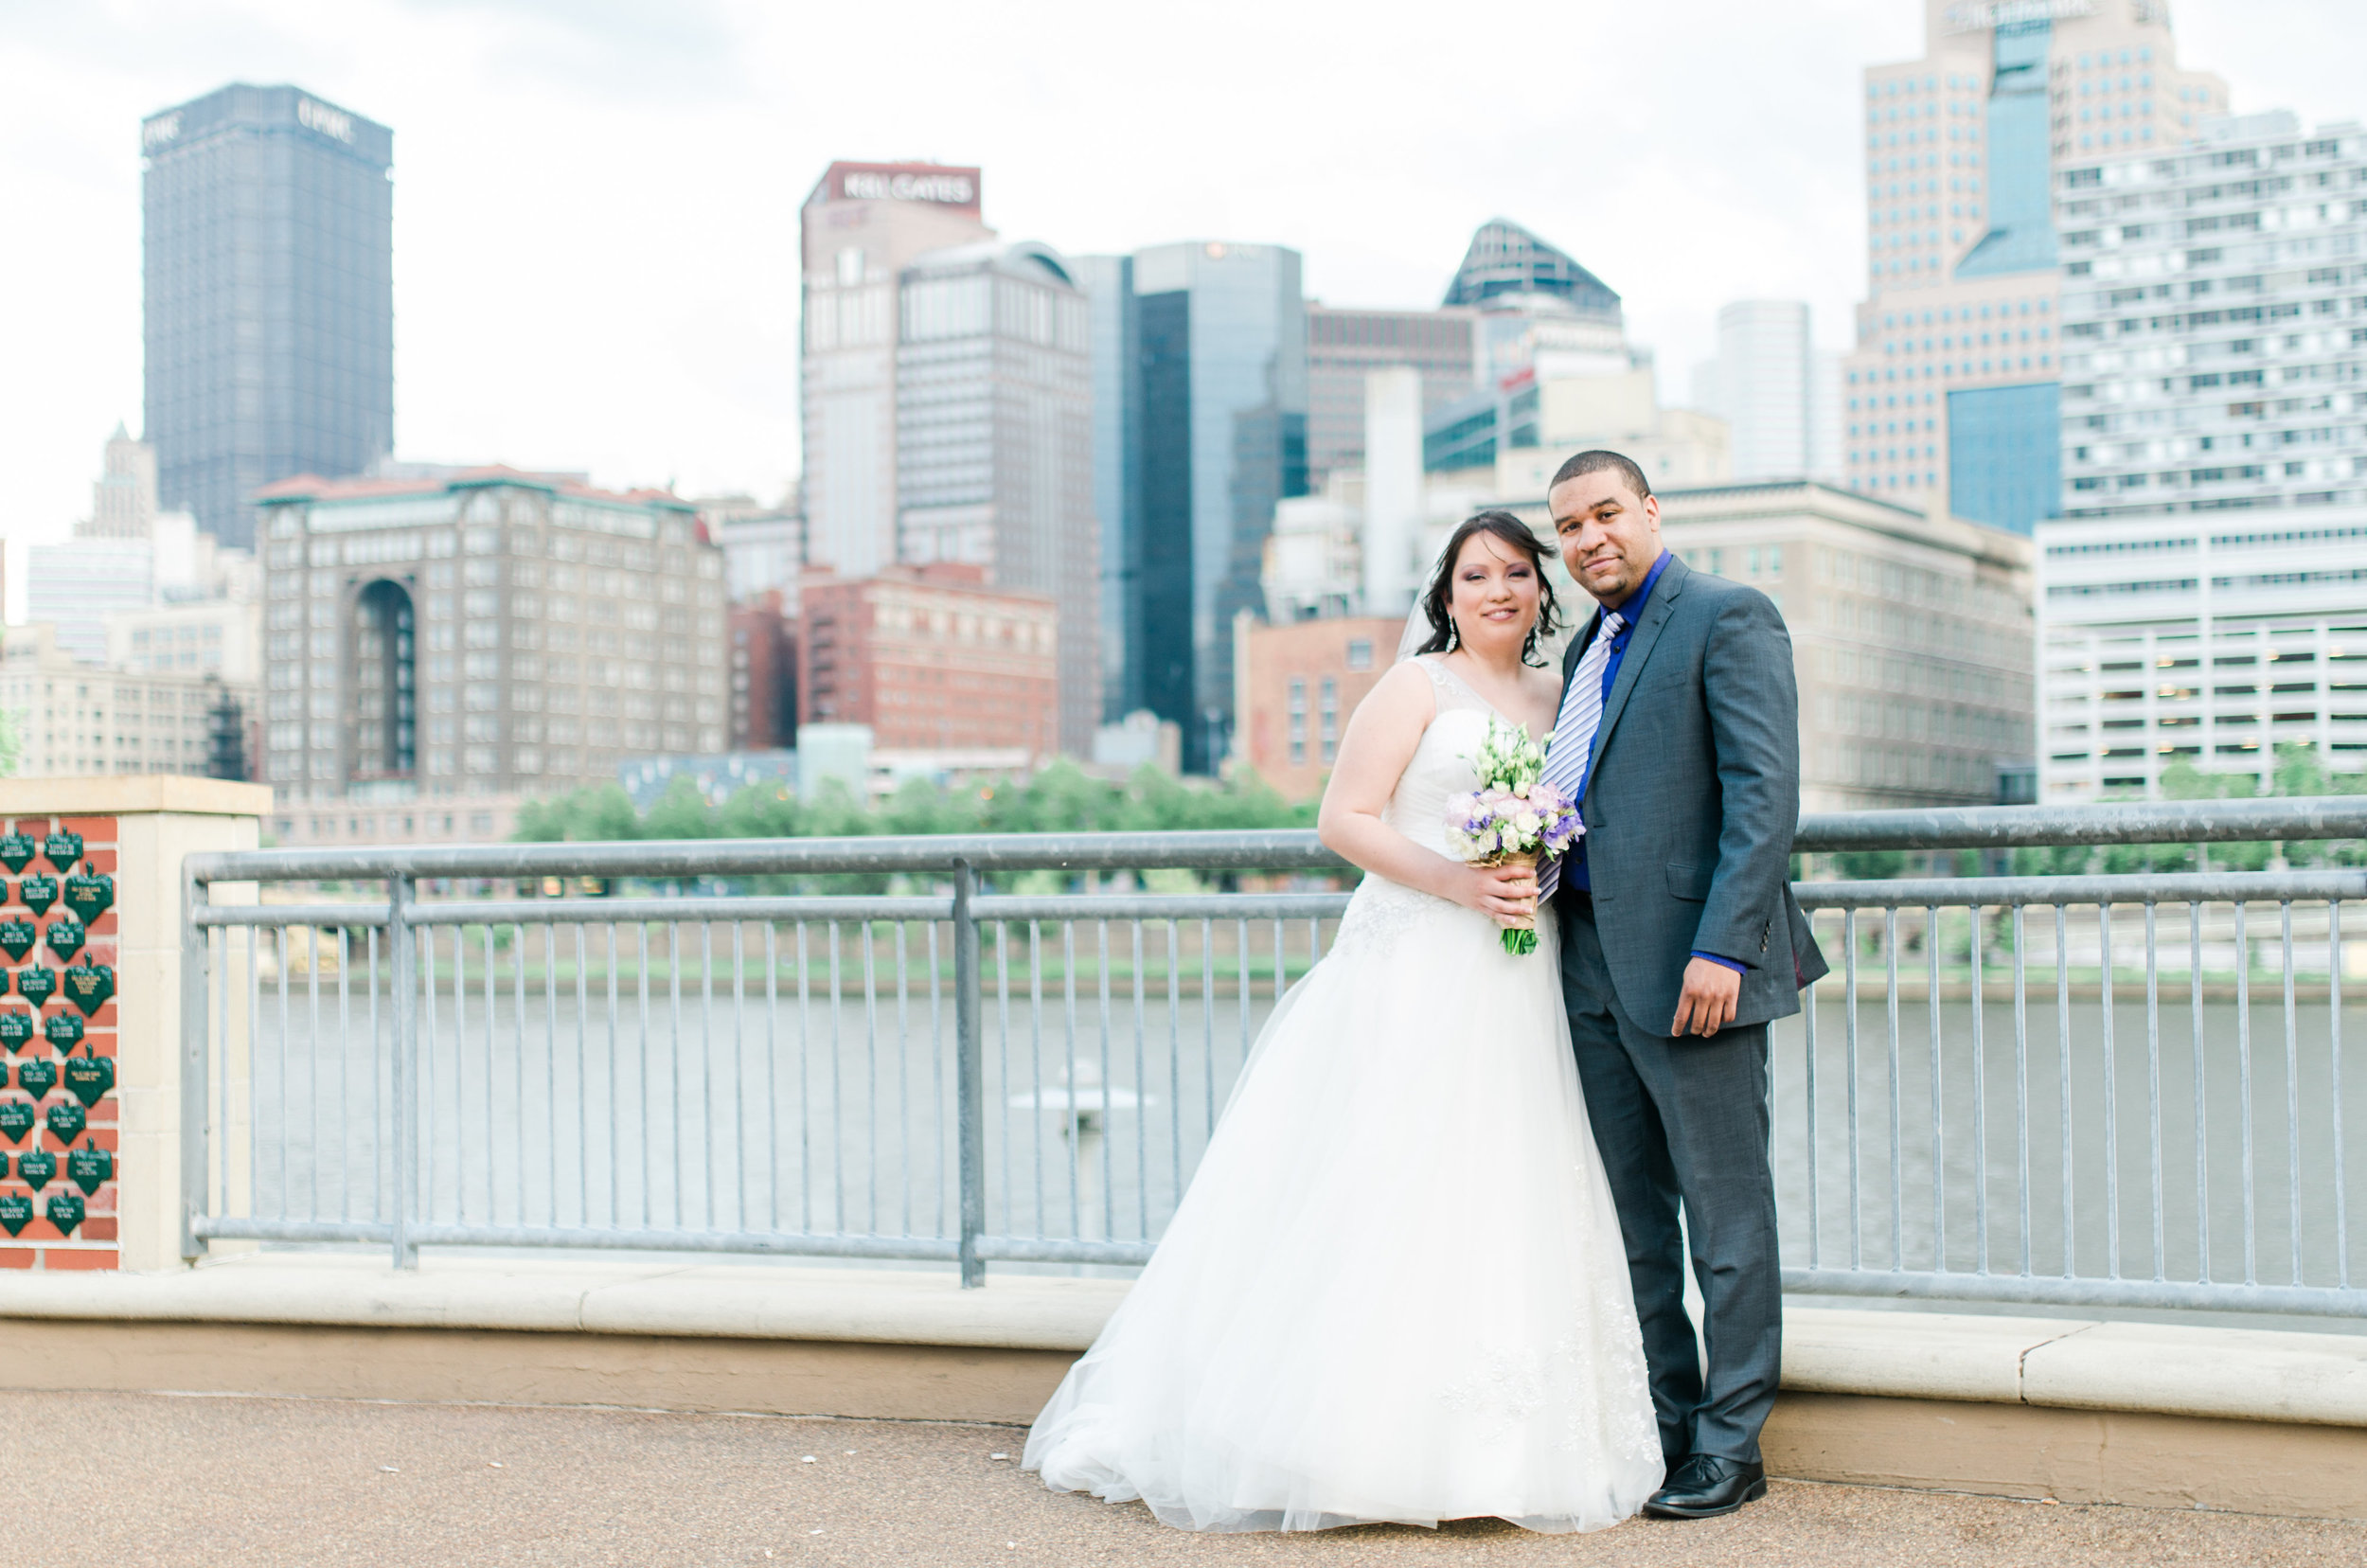 Pittsburgh Wedding Photographers | Modern Wedding Photography | Pittsburgh, PA | Natalya and Sam 36